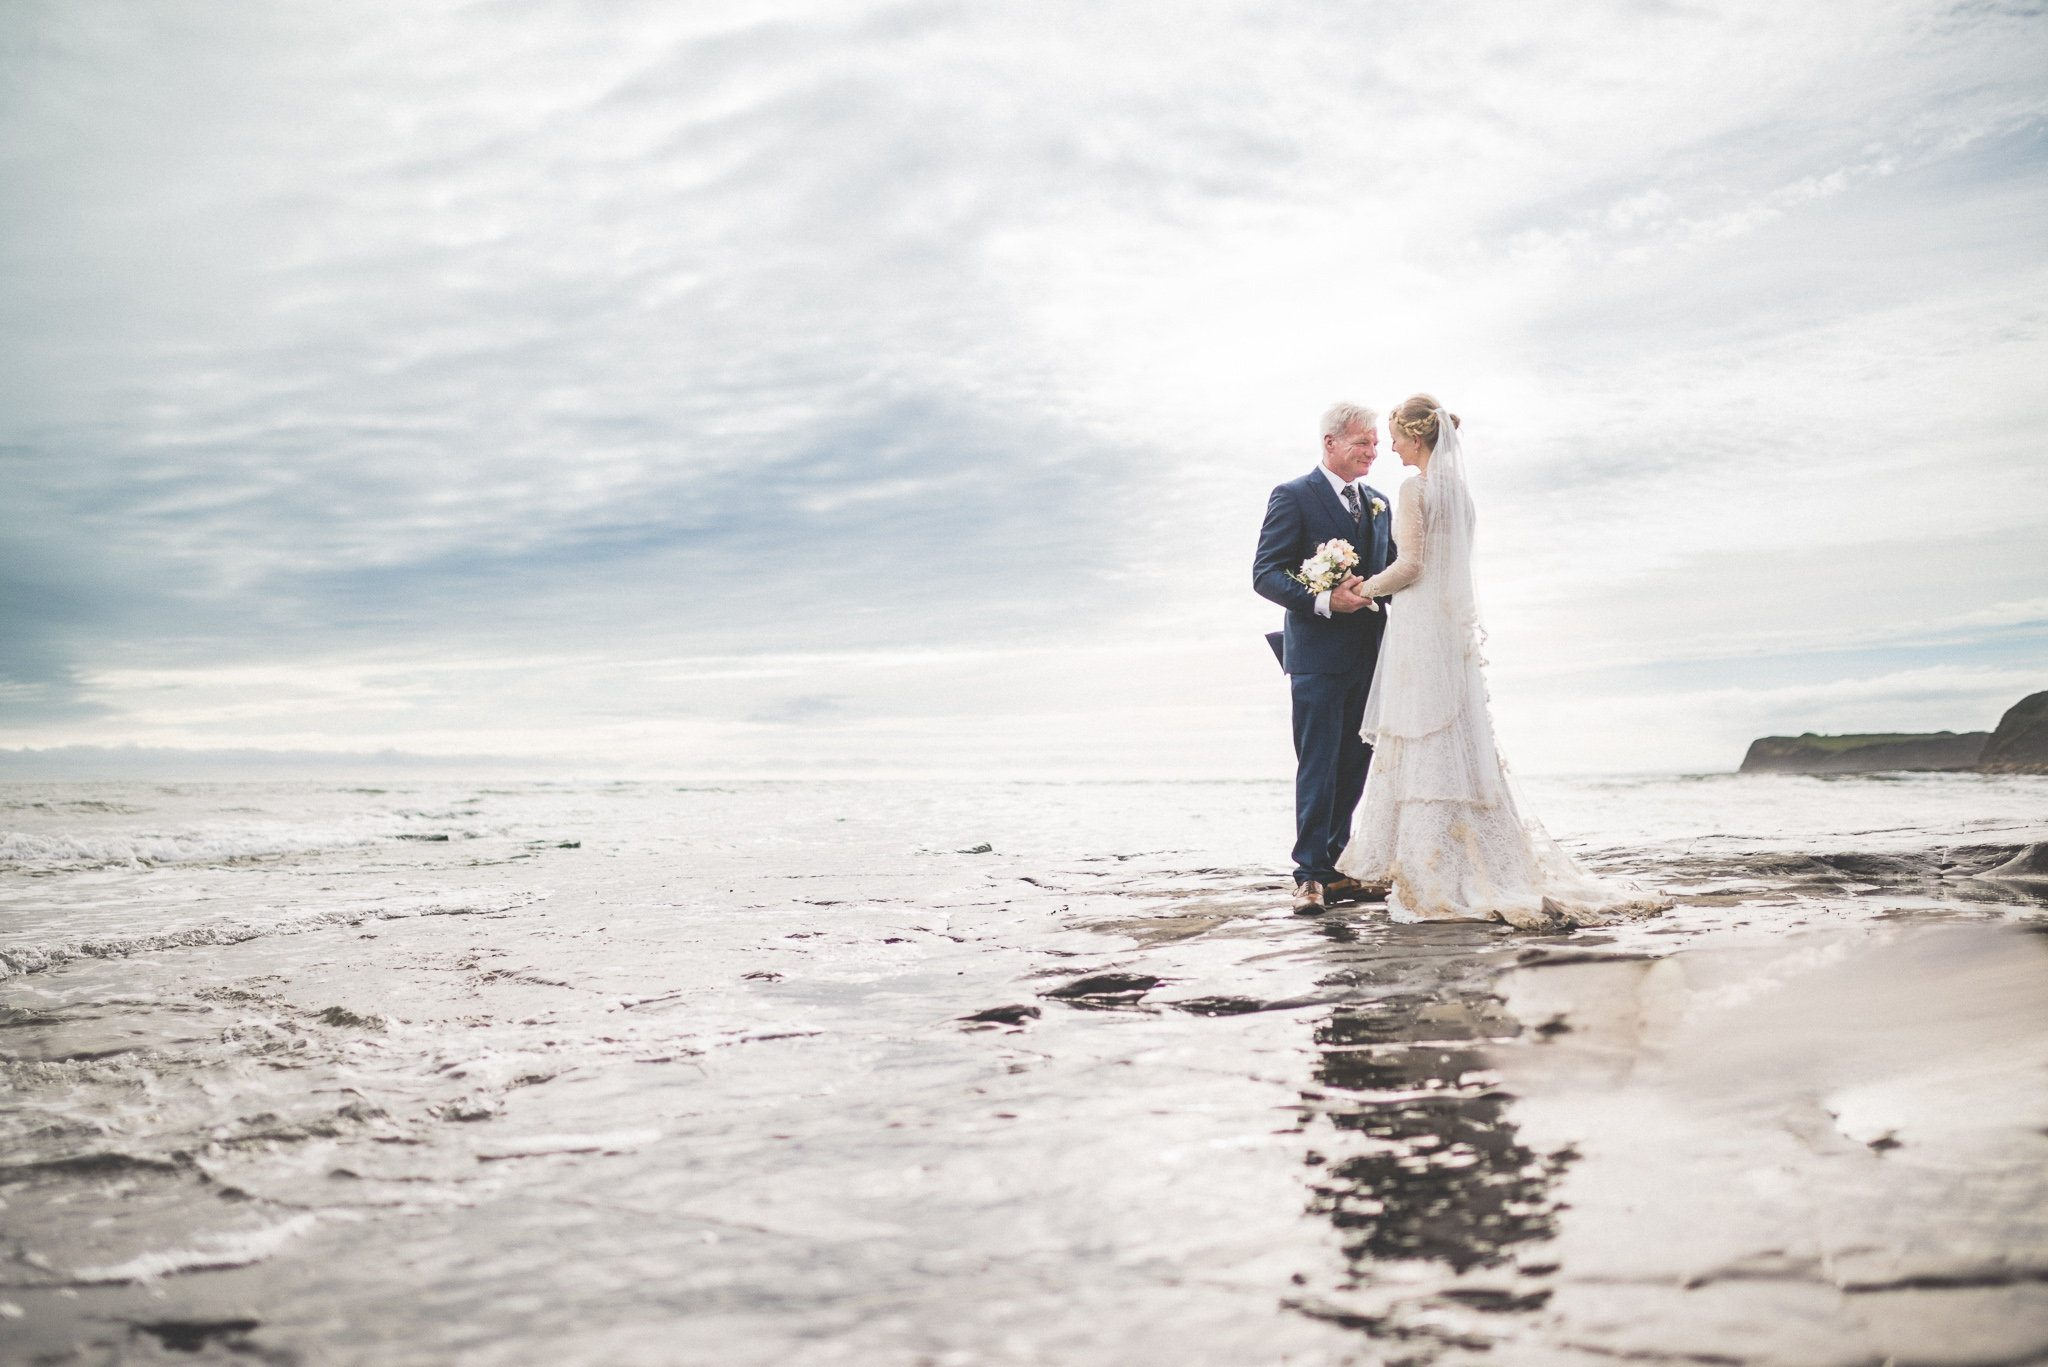 Bride Bea and Groom Jason pose for portrait shots in the waves at Kimmeridge Bay